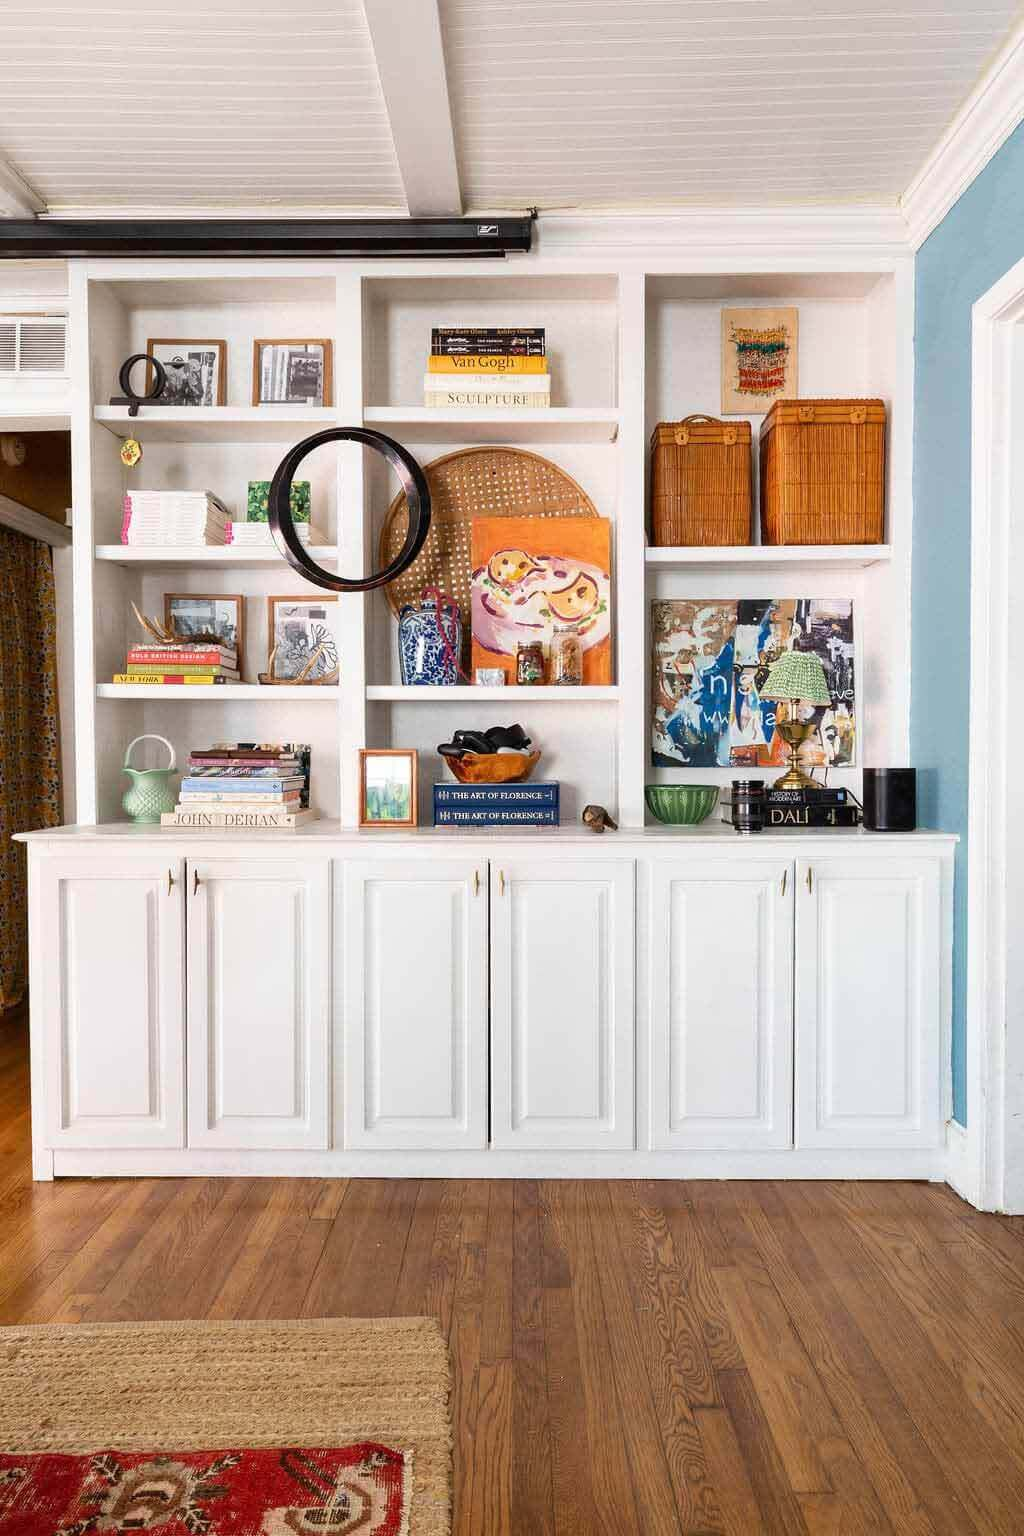 Art displayed in white built-in cabinets